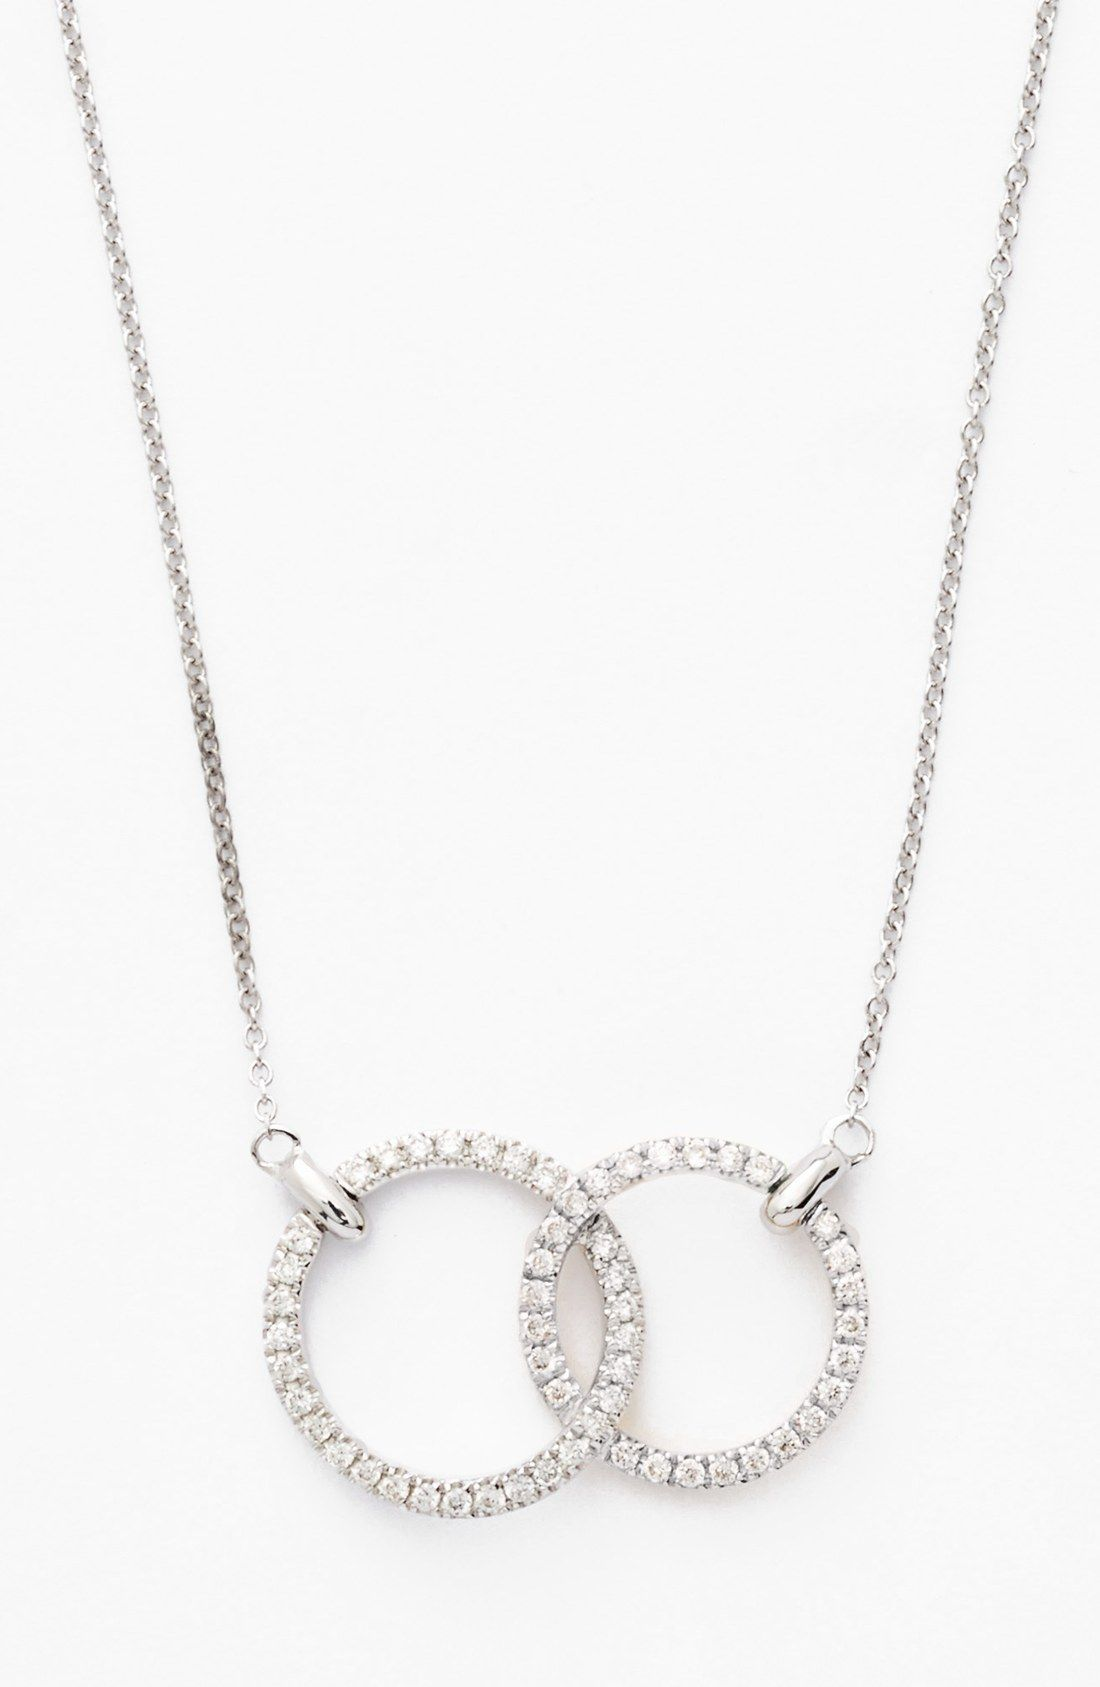 Double diamond circle pendant necklace nordstrom pendants and bony levy double diamond circle pendant necklace nordstrom exclusive aloadofball Image collections